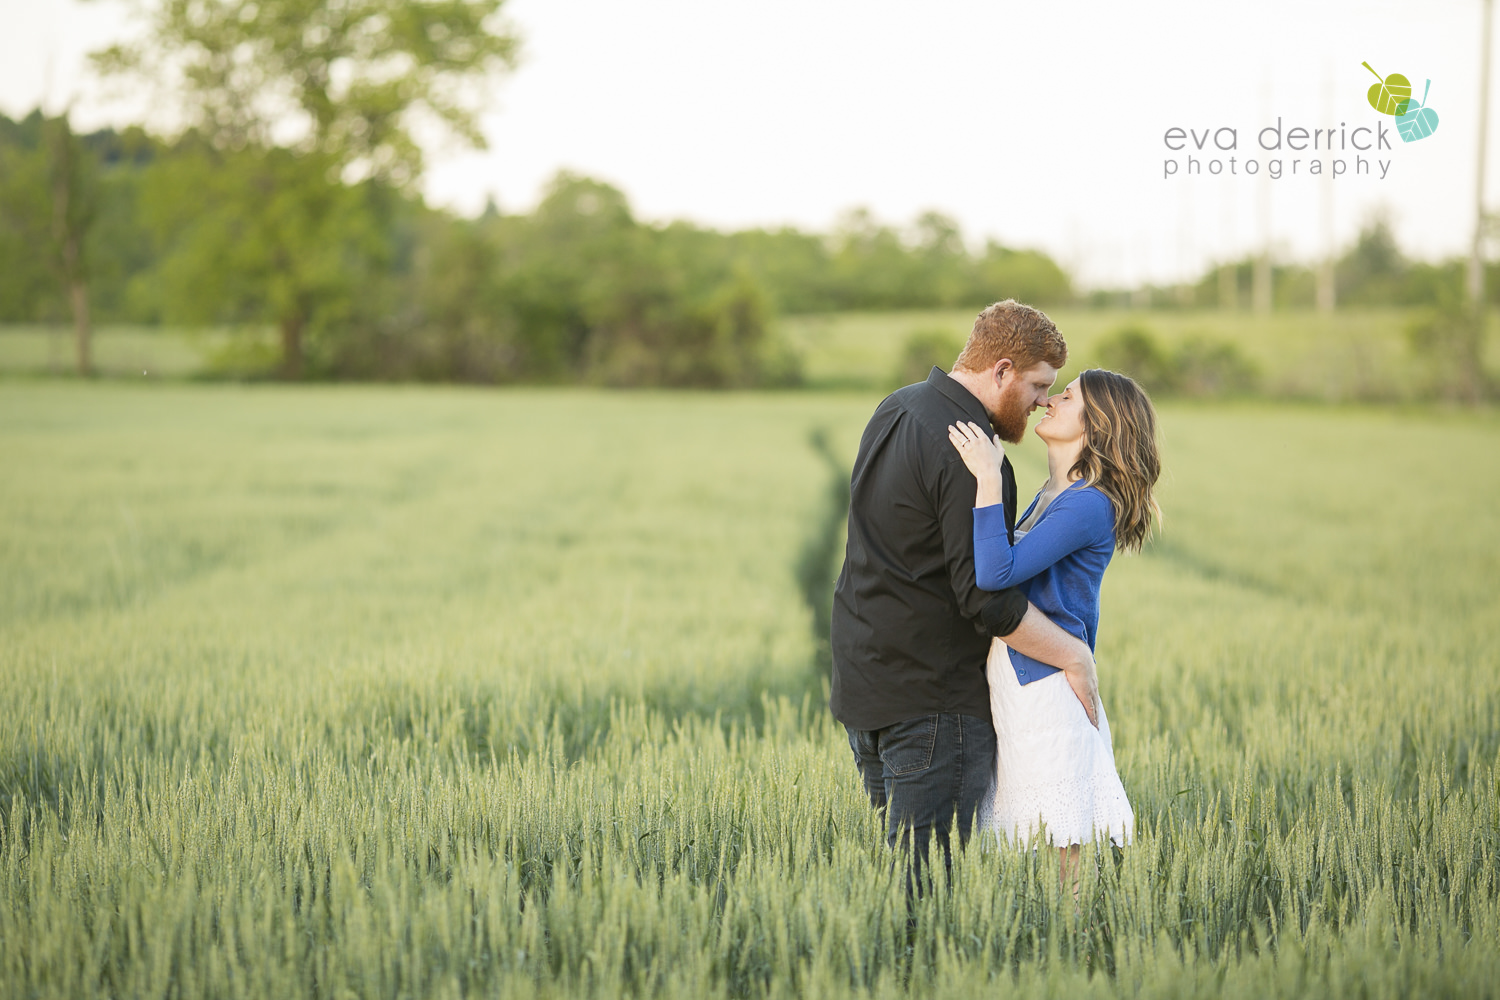 Millgrove-Photographer-Millgrove-Engagement-Session-photography-by-Eva-Derrick-Photography-011.JPG